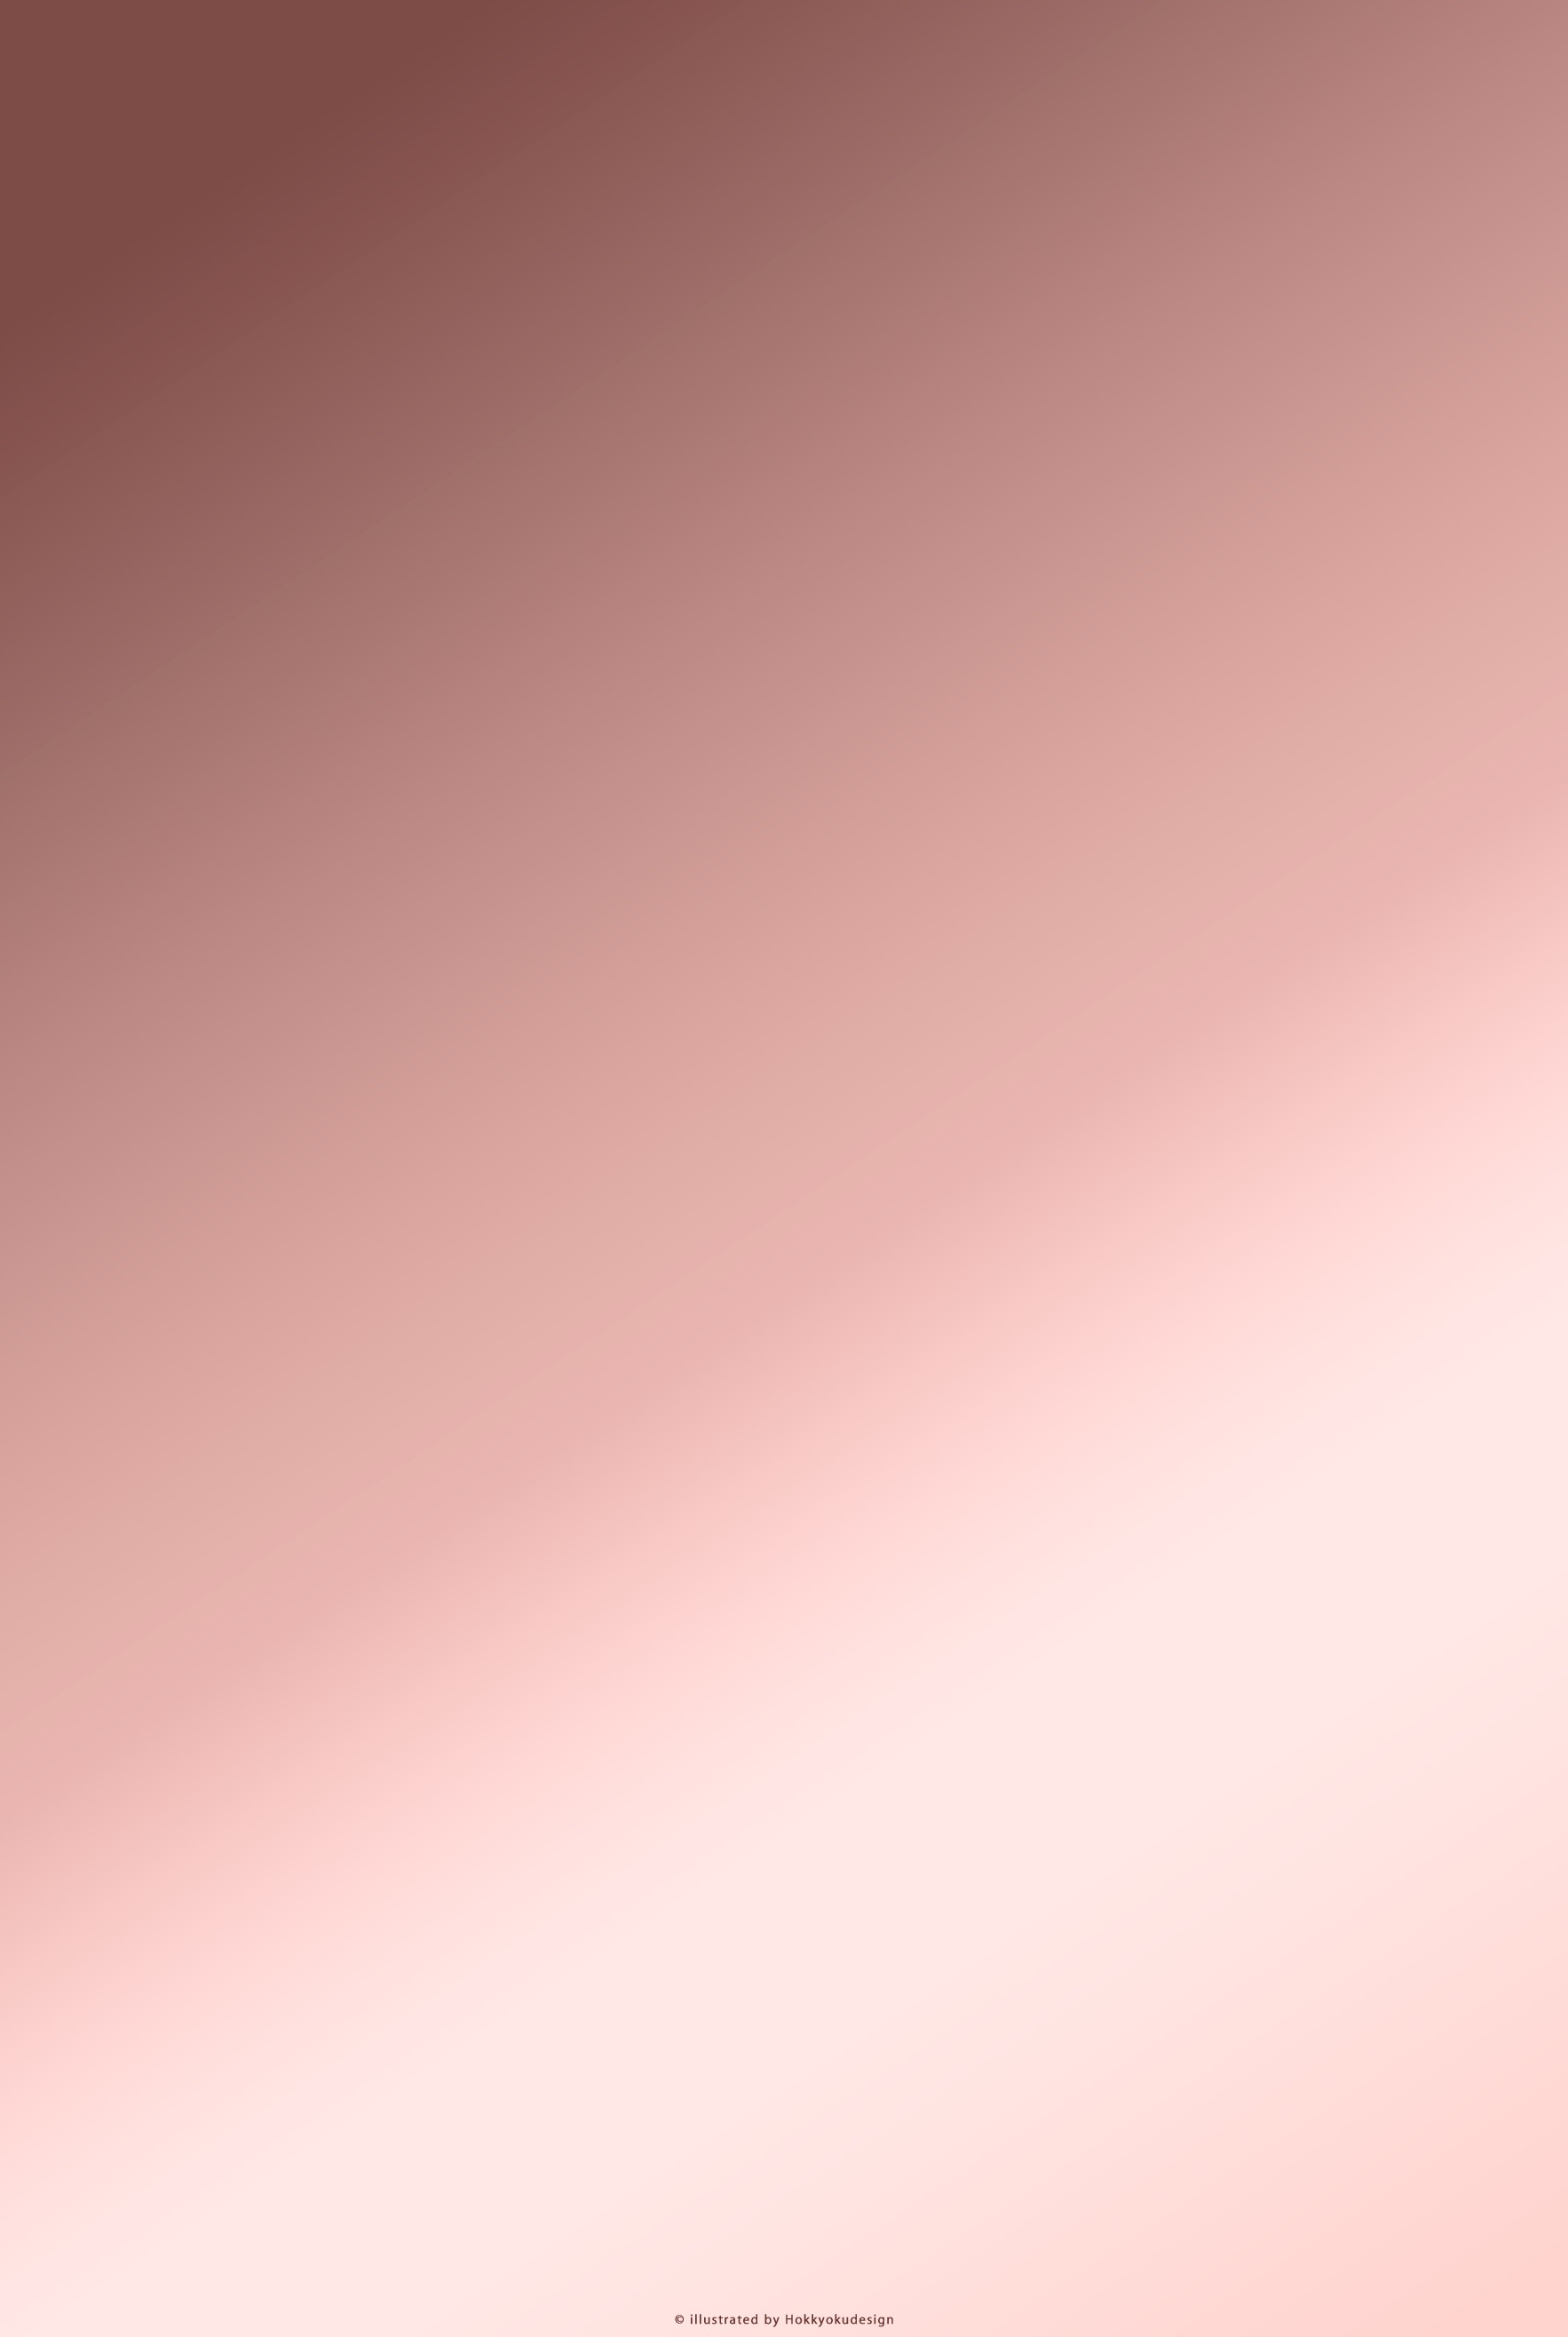 Rose gold wallpaper download free amazing full hd - Rose gold background for iphone ...